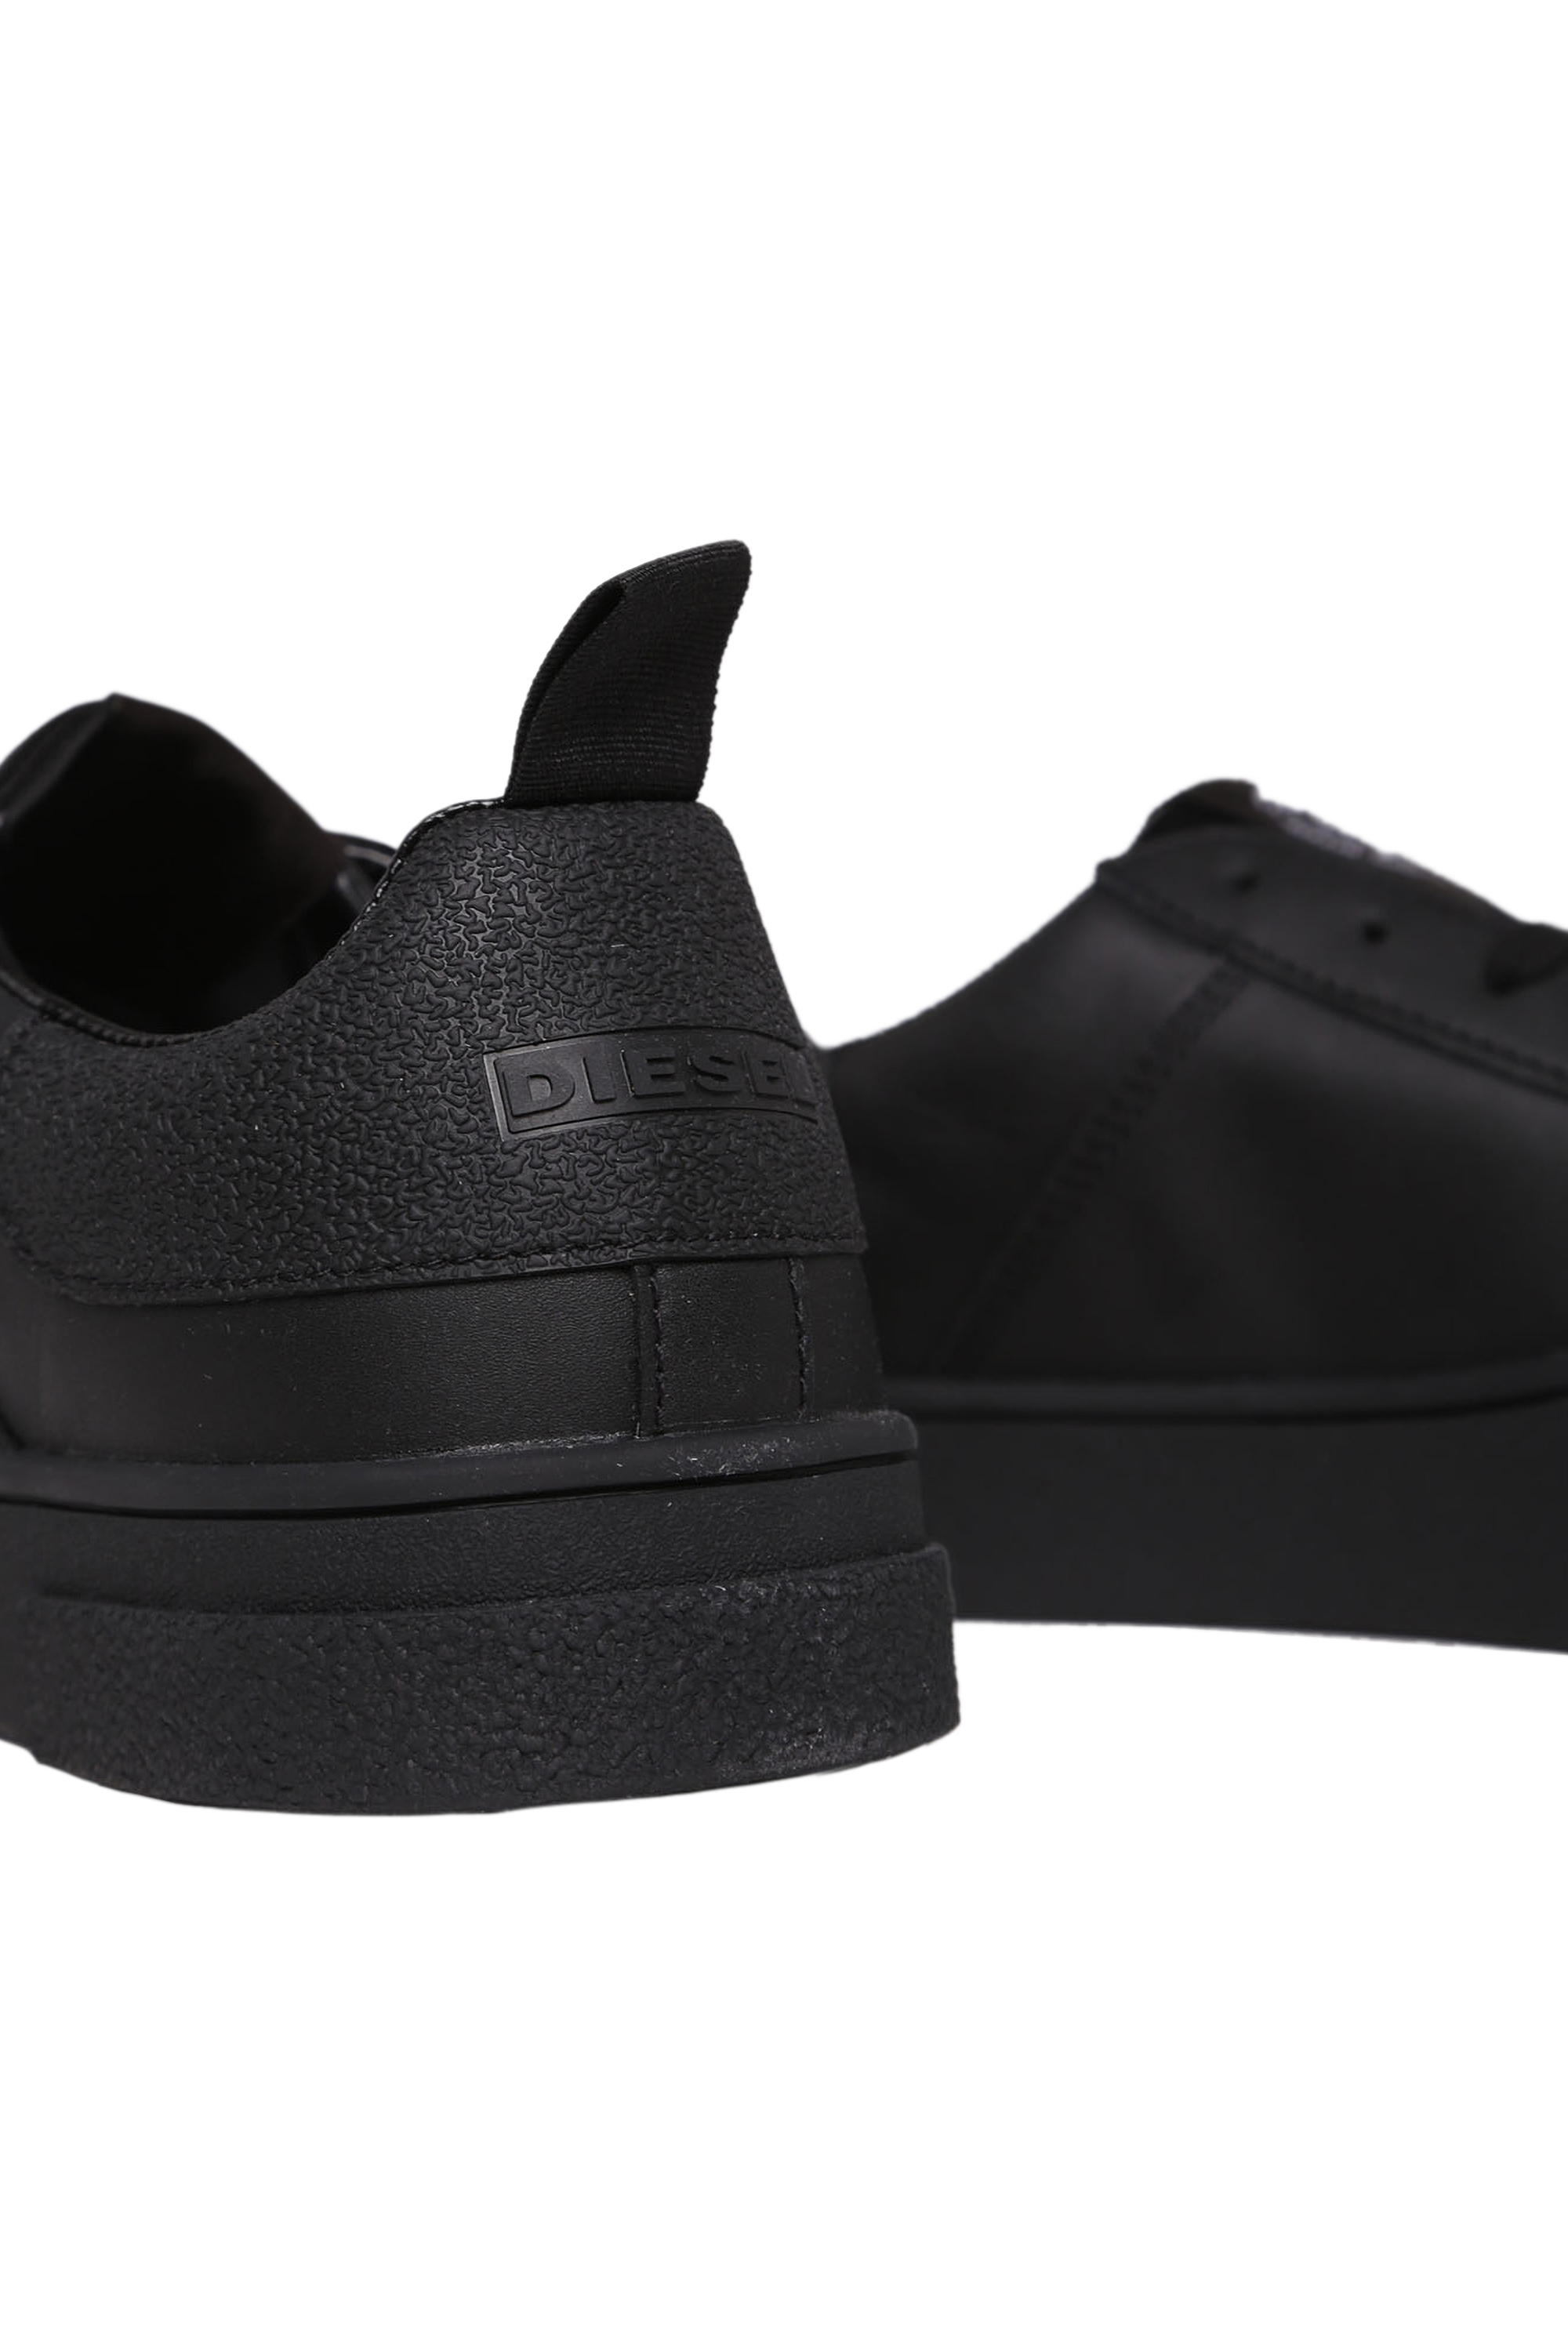 Diesel - S-CLEVER LOW,  - Baskets - Image 4